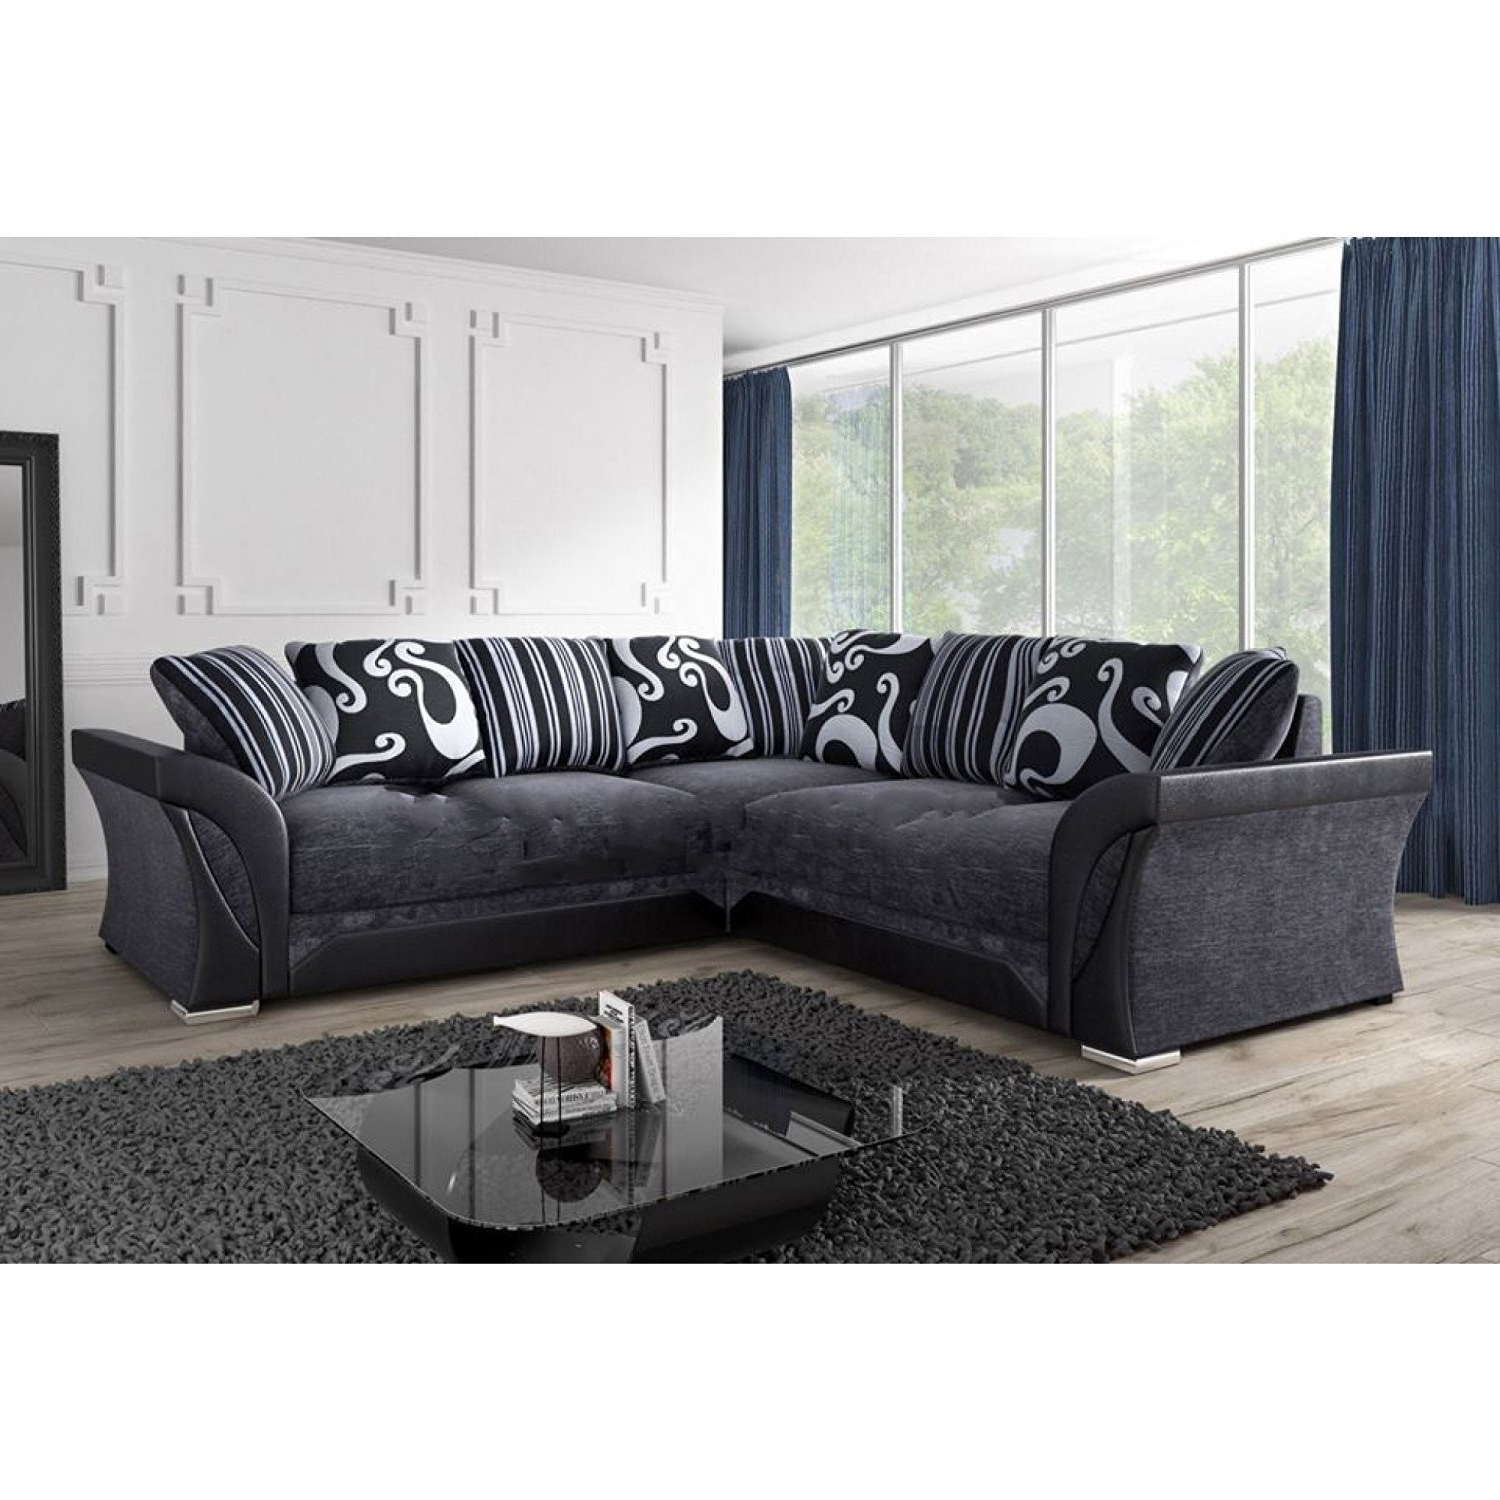 Lovely Corner Sofa Black And Grey – Mediasupload Pertaining To Most Recent Fabric Corner Sofas (View 9 of 20)